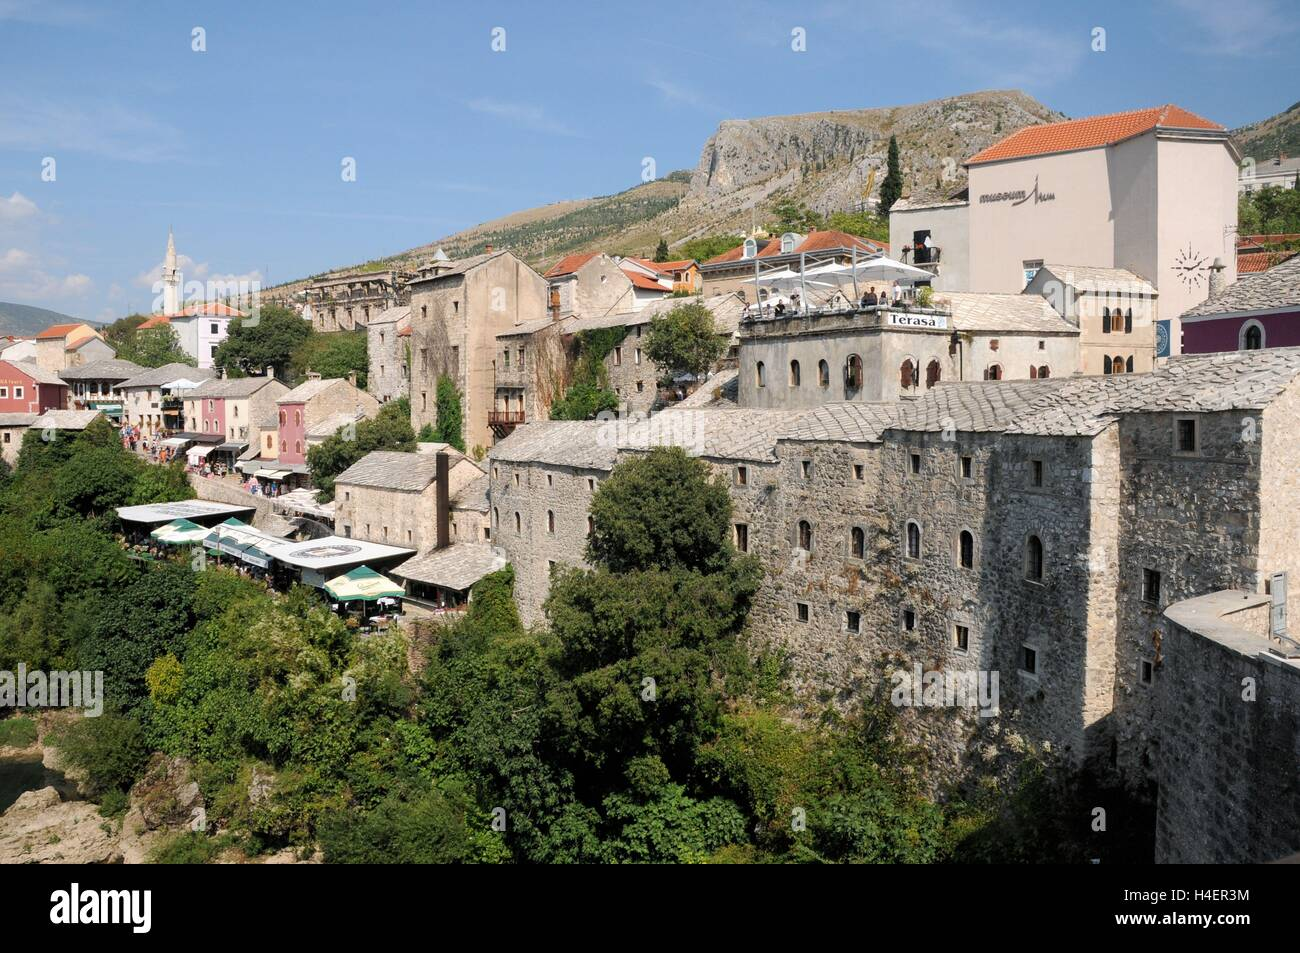 The view off the Stari Most bridge, Mostar, Bosnia Herzegovina. - Stock Image